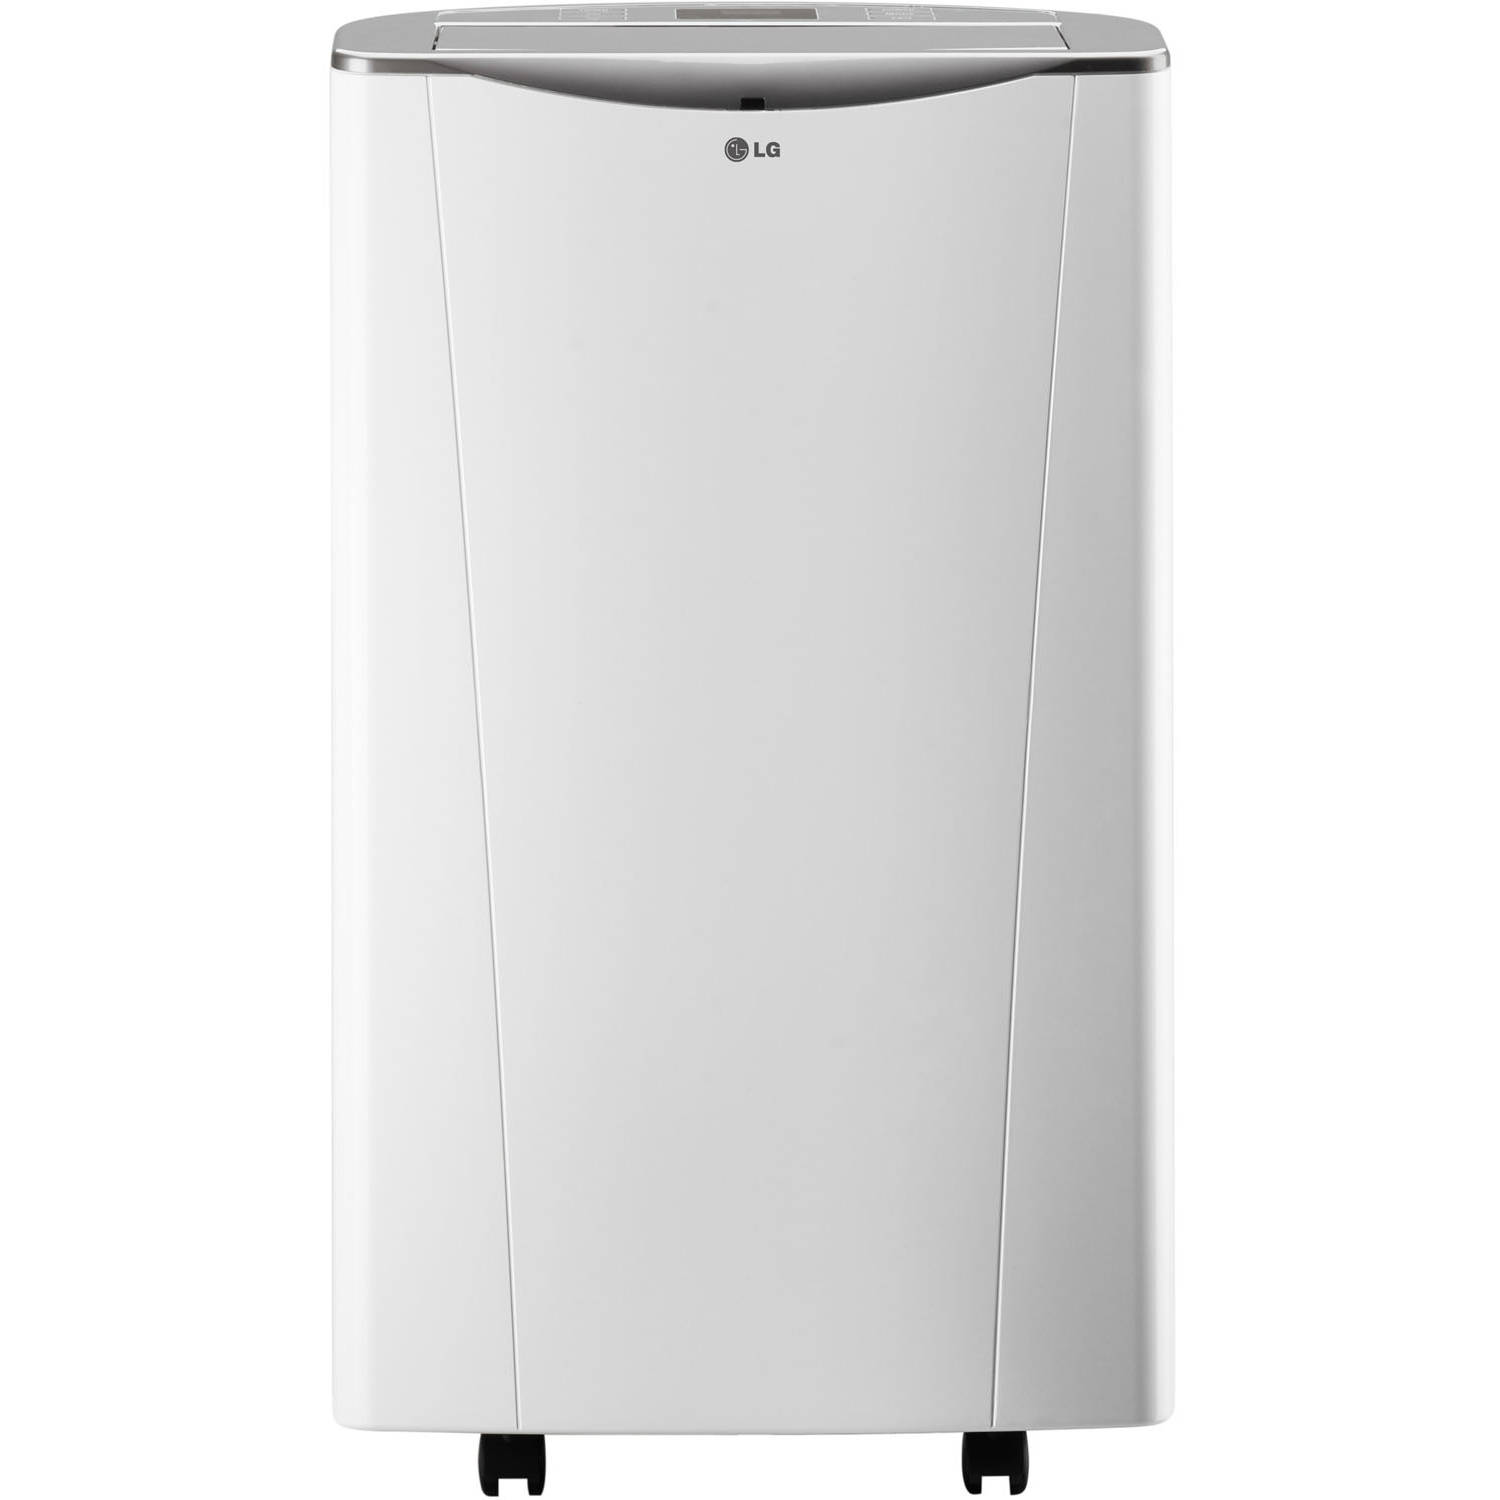 lg electronics lp1415wxrsm 14000btu 115v portable air conditioner with wifi technology walmartcom - Lg Air Conditioner